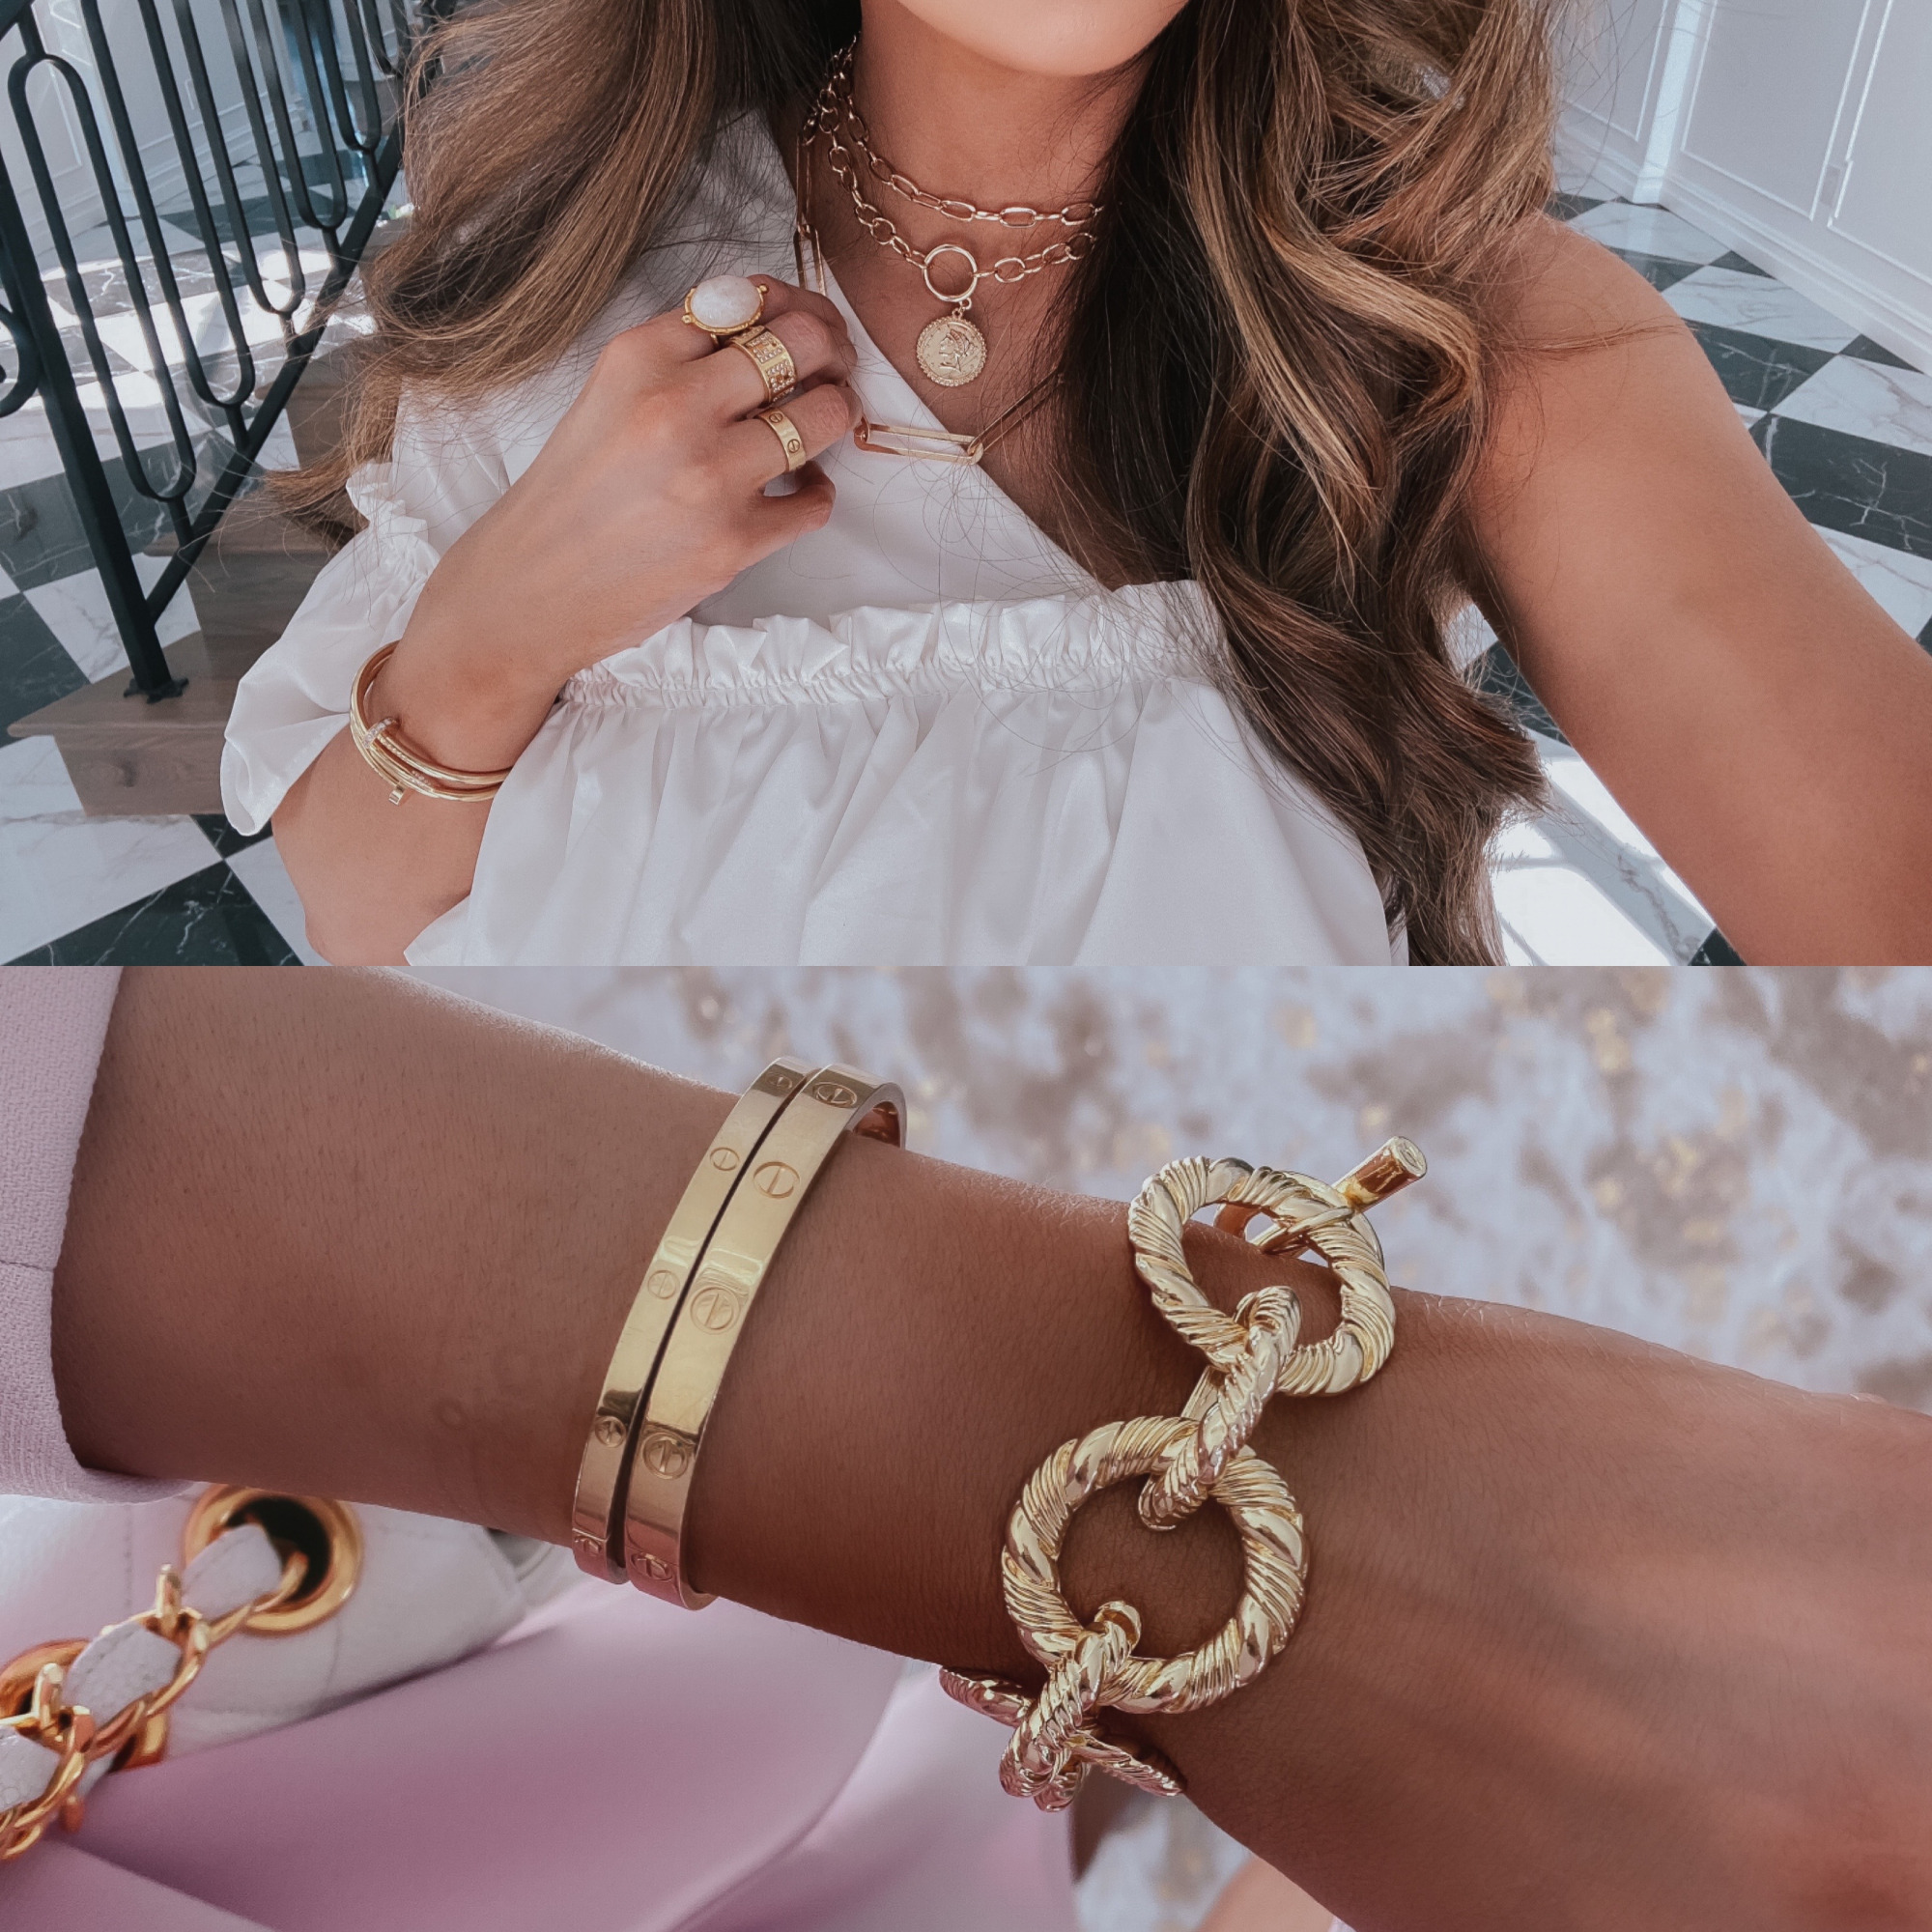 LTK day fall 2020, the styled collection jewelry, emily ann gemma |  Sale Alert by popular US fashion blog, The Sweetest Thing: collage image of Emily Gemma wearing The Styled Collection jewelry.